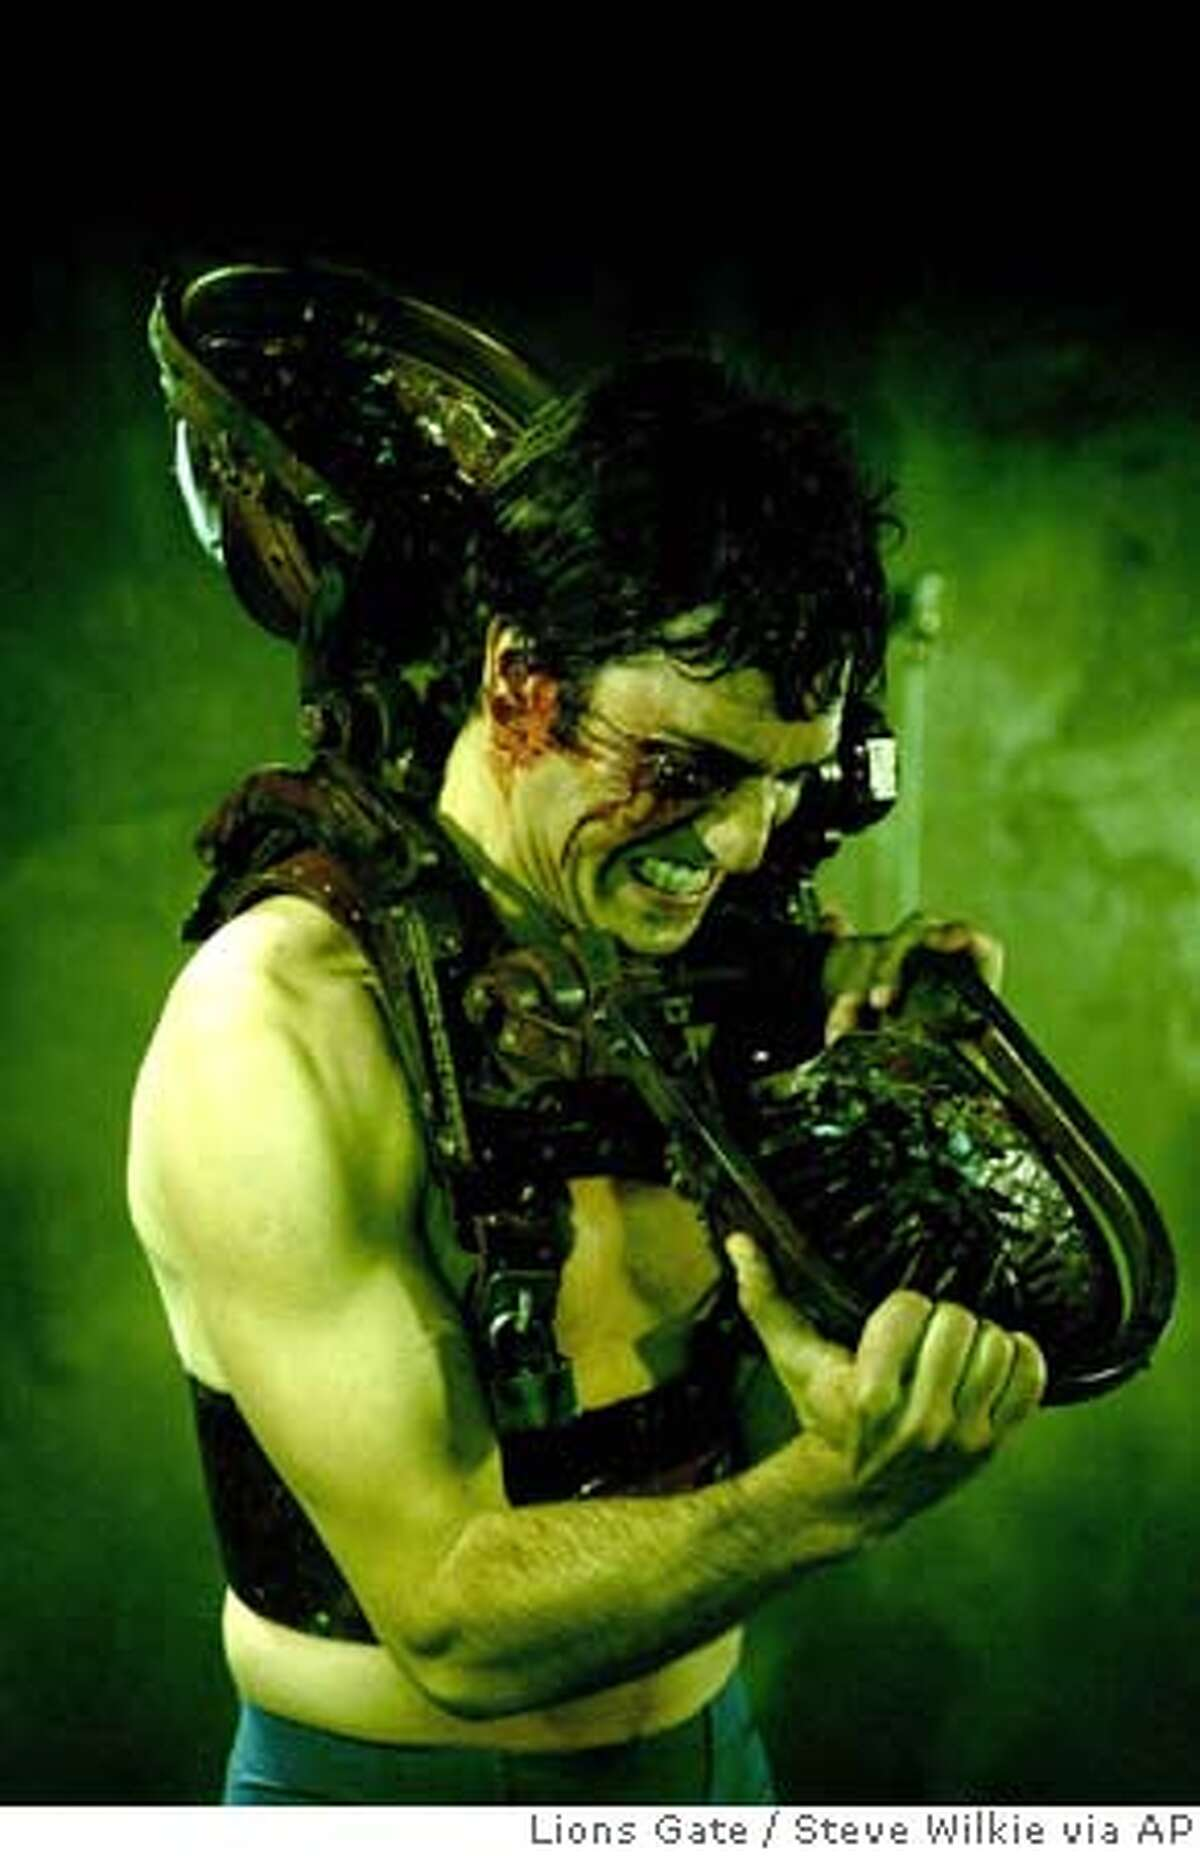 In this photo provided by Lions Gate, Michael (Noam Jenkins) struggles with Jigsaw's Venus Flytrap from